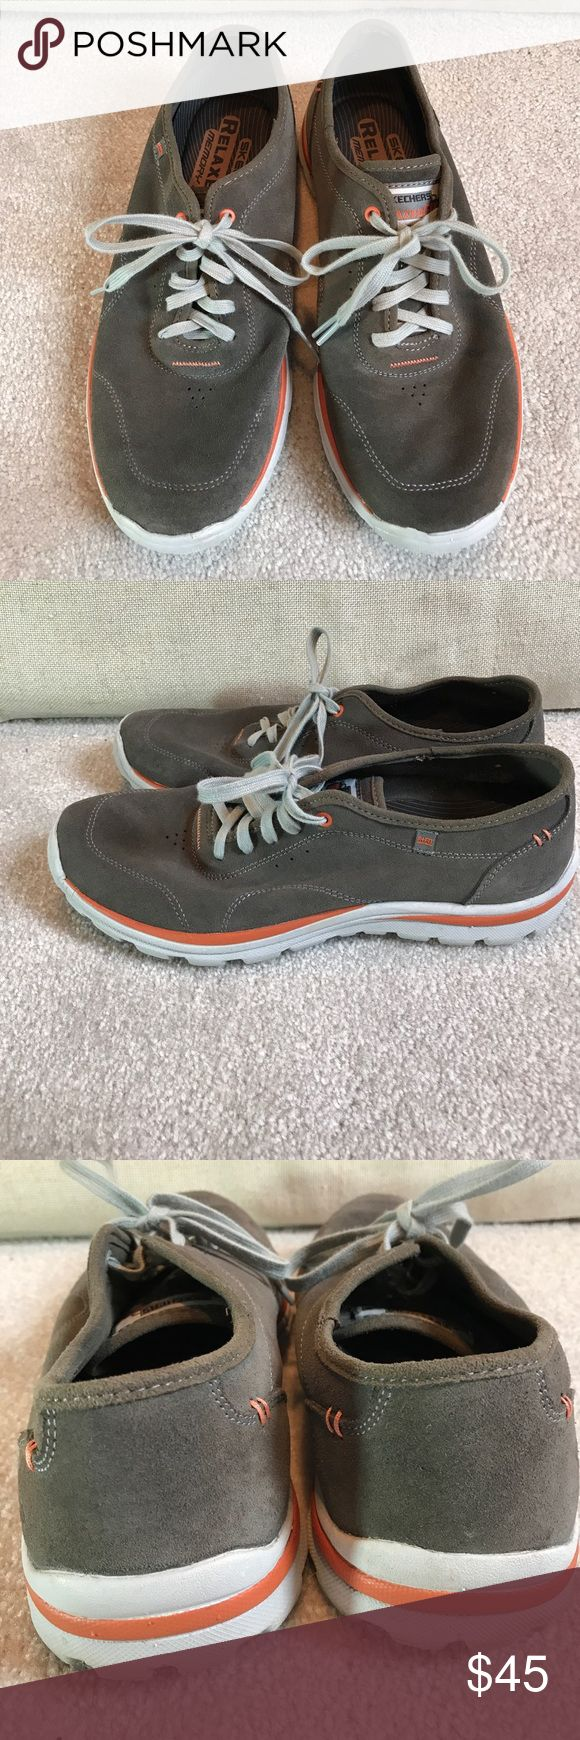 Men's Skechers RelaxedFit memory foam sneakers 9.5 Once worn. Clean. Unlined suede. Light and perfect for summer Skechers Shoes Sneakers